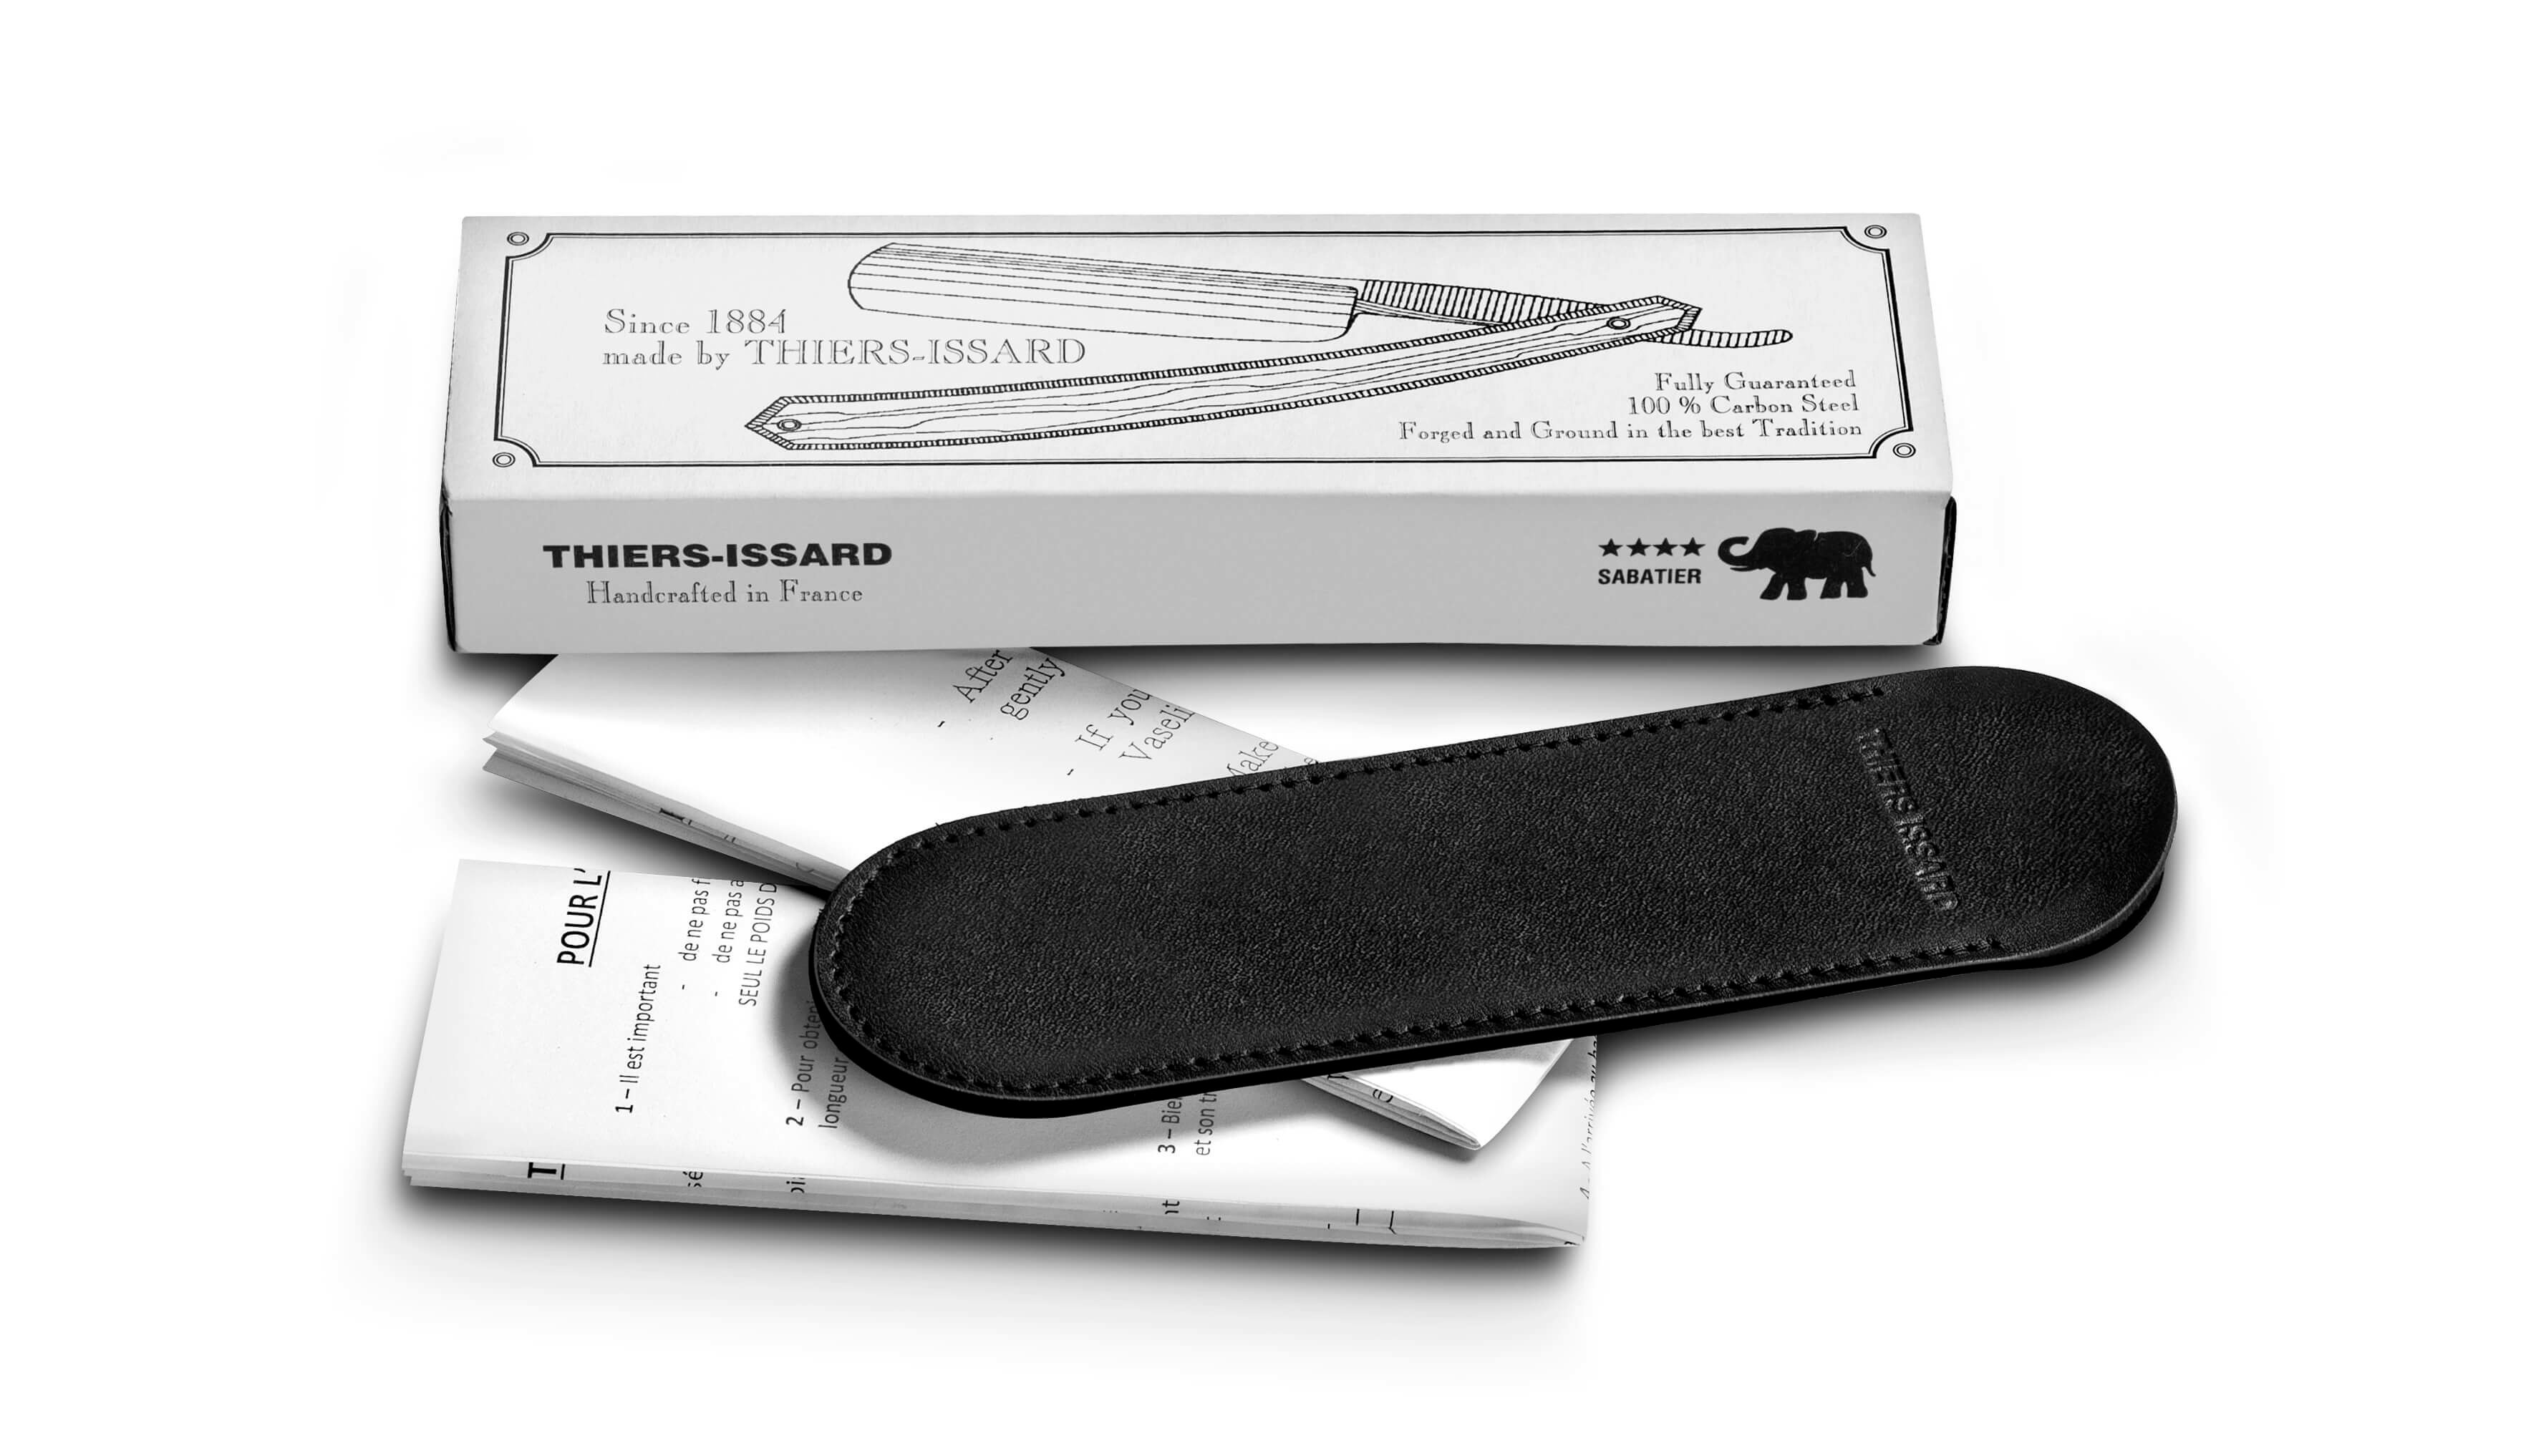 Coupe-Chou Thiers-Issard Barbier Pack